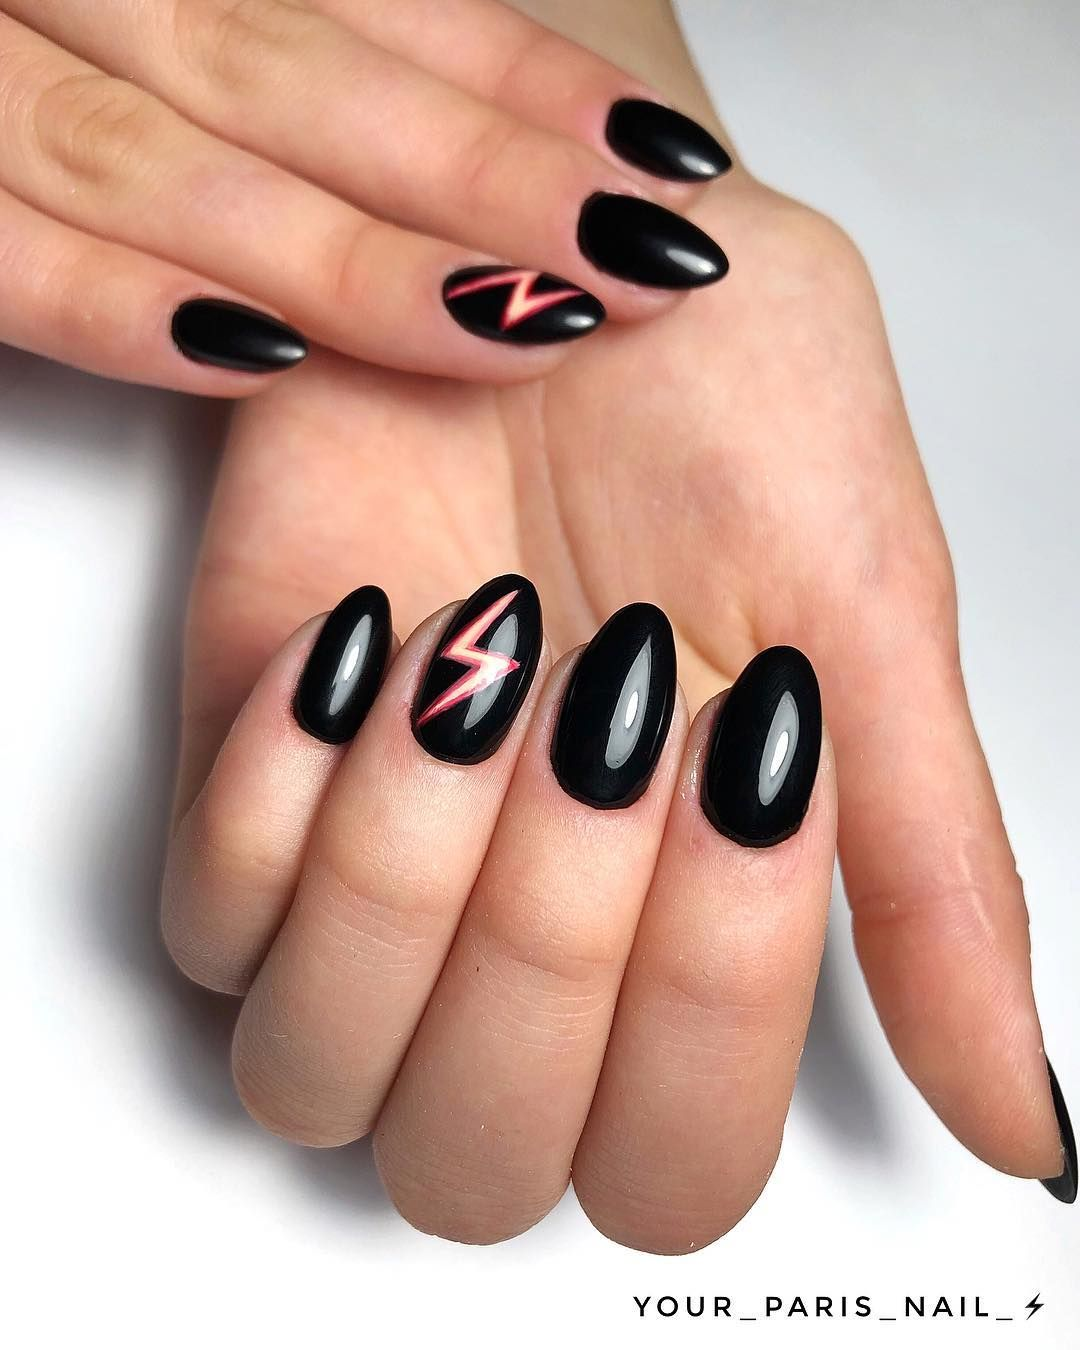 203 images about Make up & nails ?? ?? on We Heart It See more